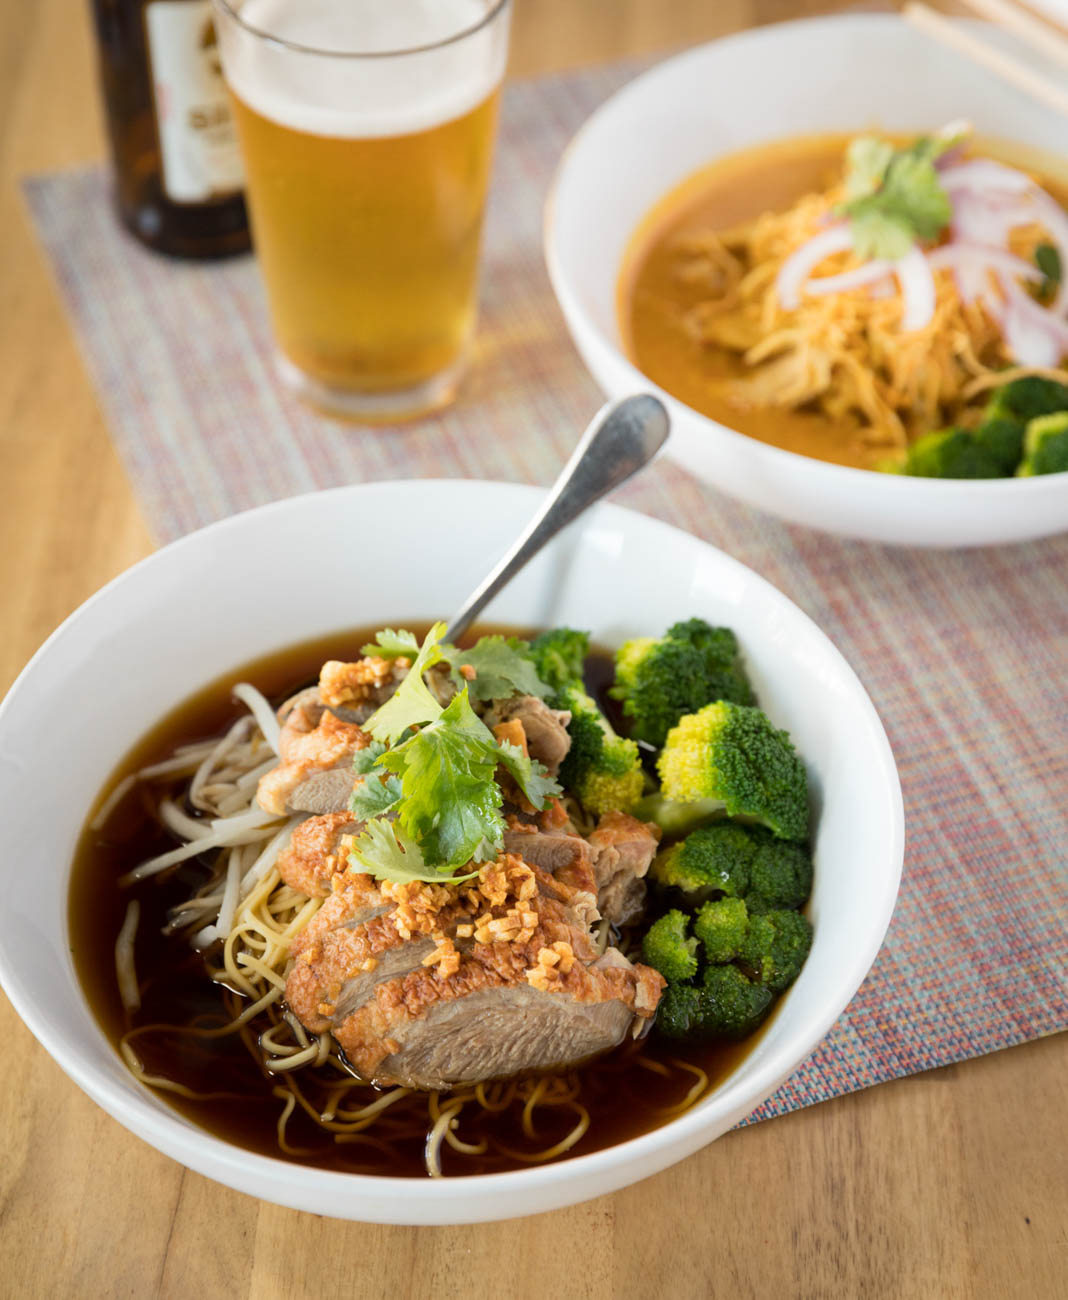 Duck noodle soup: egg noodle and duck in delicious house-made broth with broccoli & bean sprouts / Image: Marlene Rounds // Published: 1.17.19